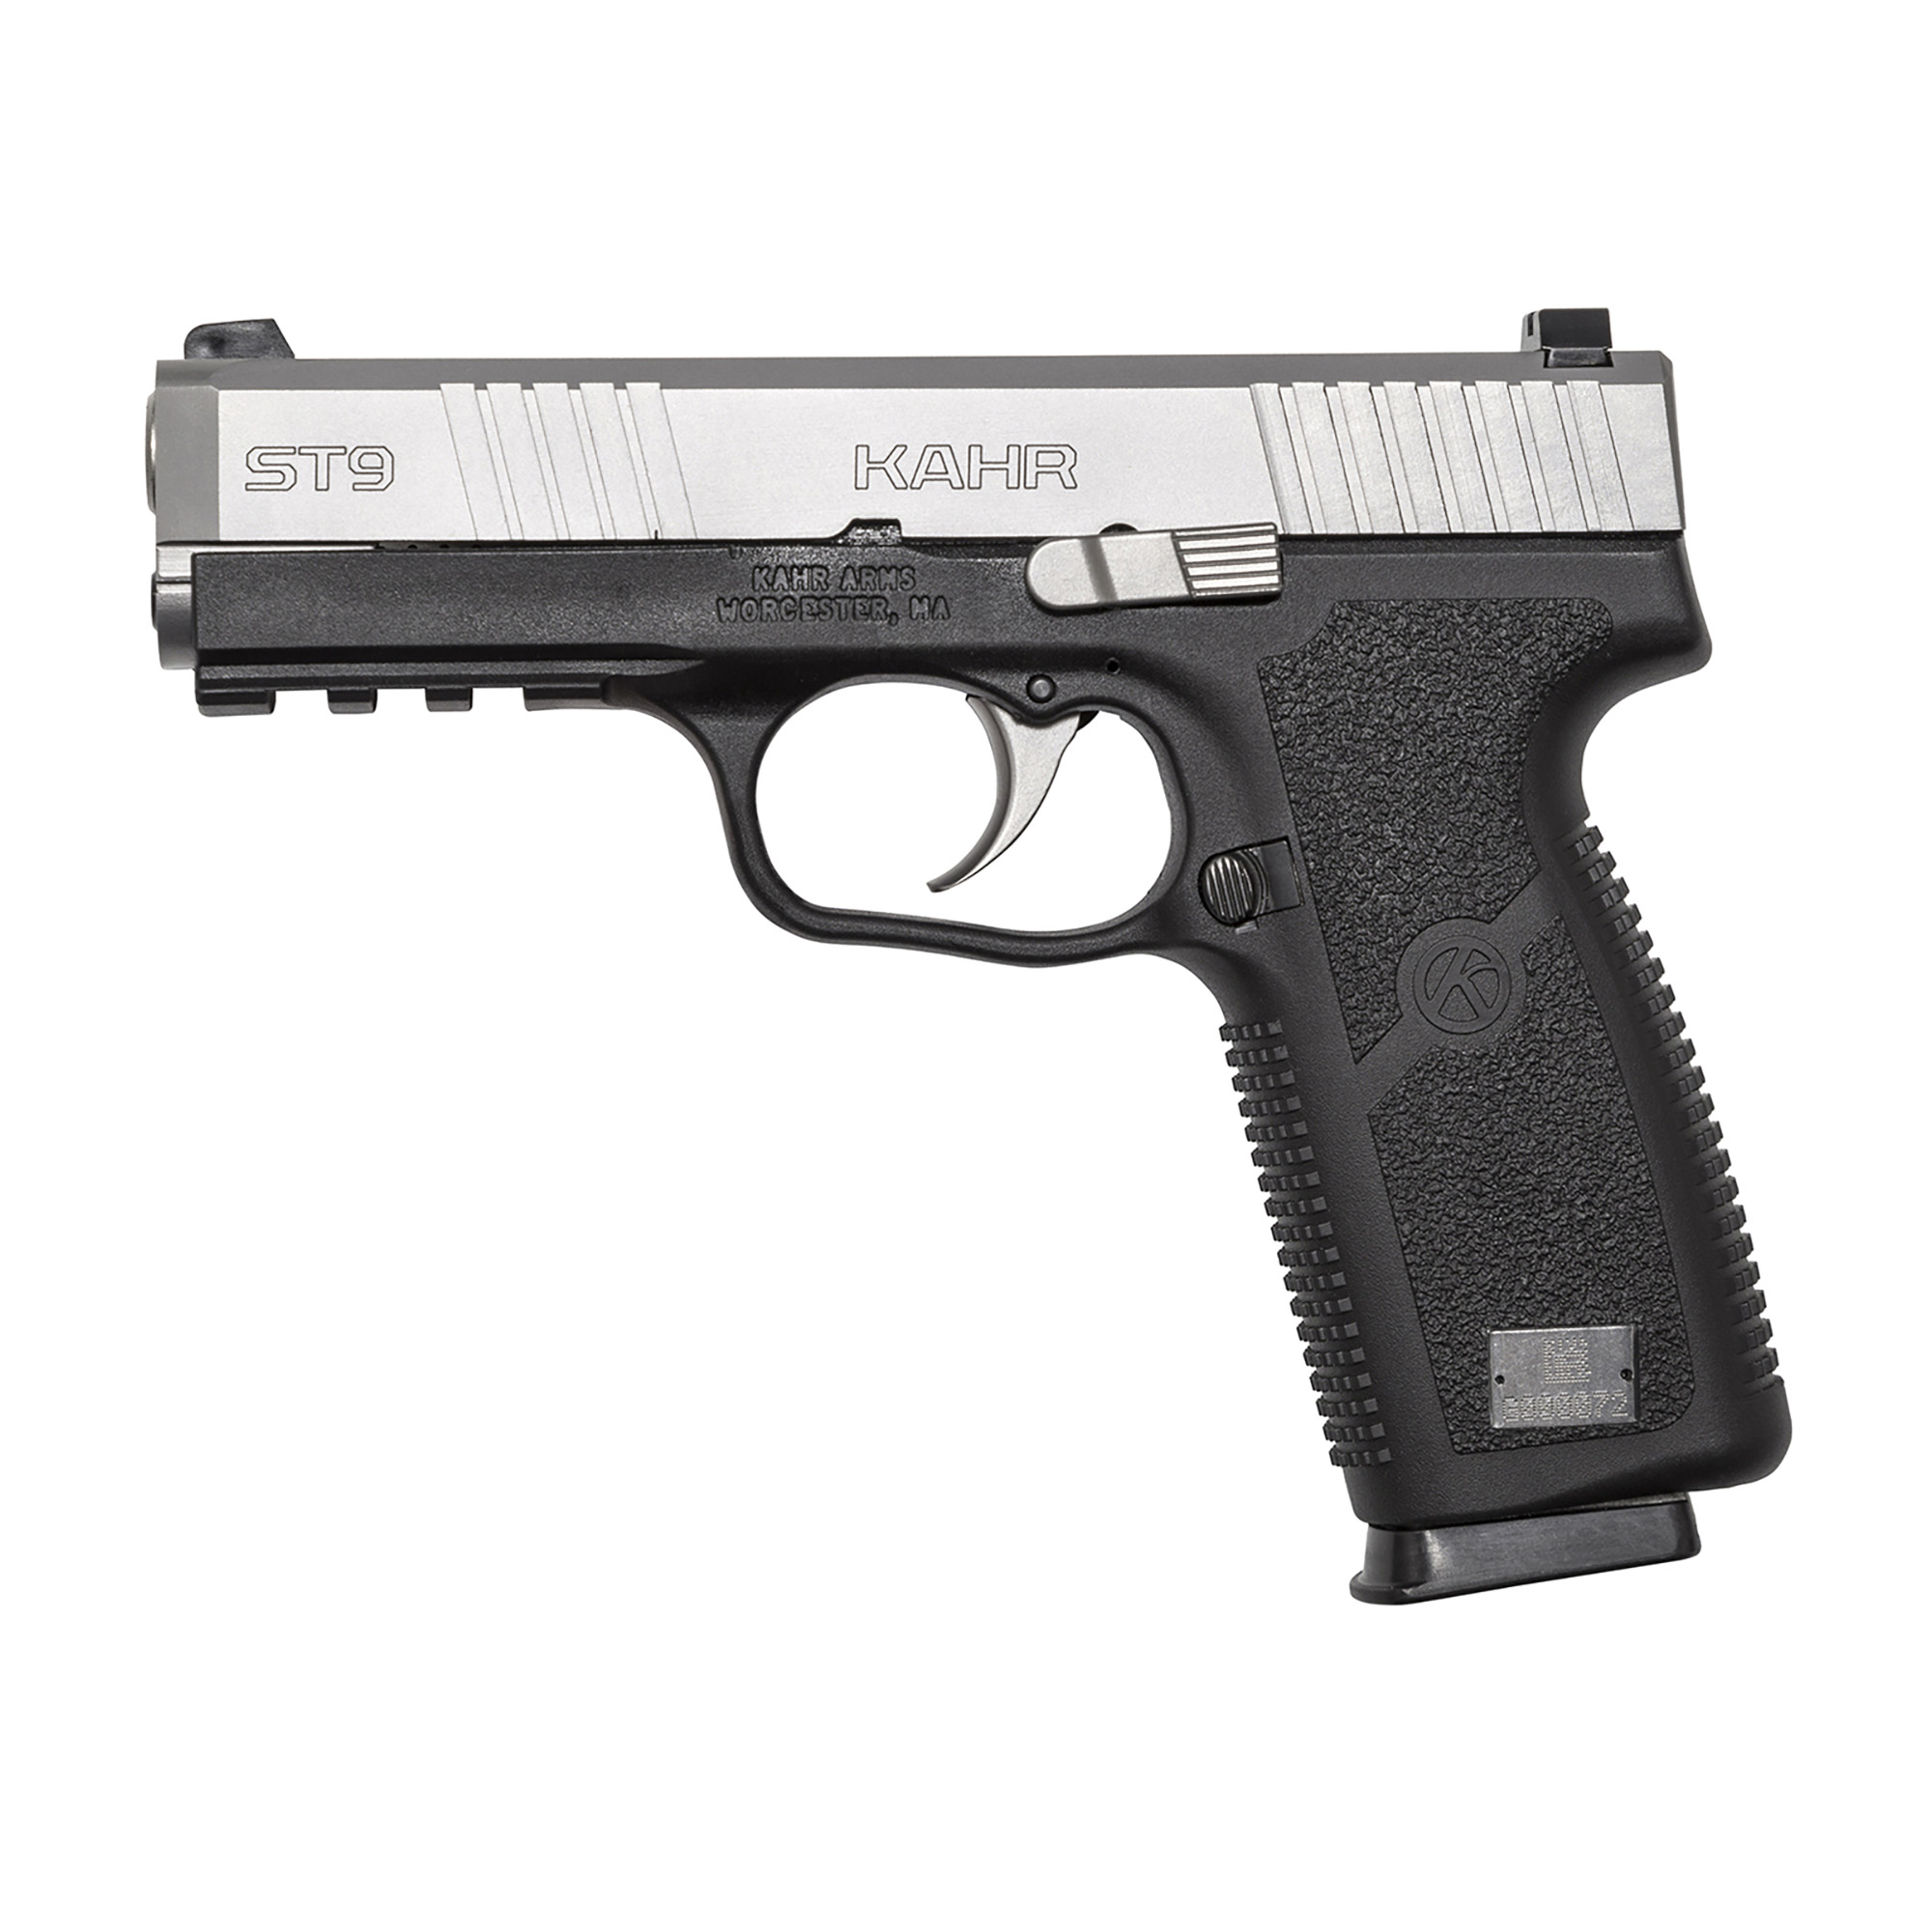 """Kahr Arms offers the best concealed carry/back-up gun on the market by offering high quality and total reliability in a lightweight package. The new """"S"""" Series features a redesigned magazine base and grip"""" a limited lifetime warranty and ships with two magazines."""